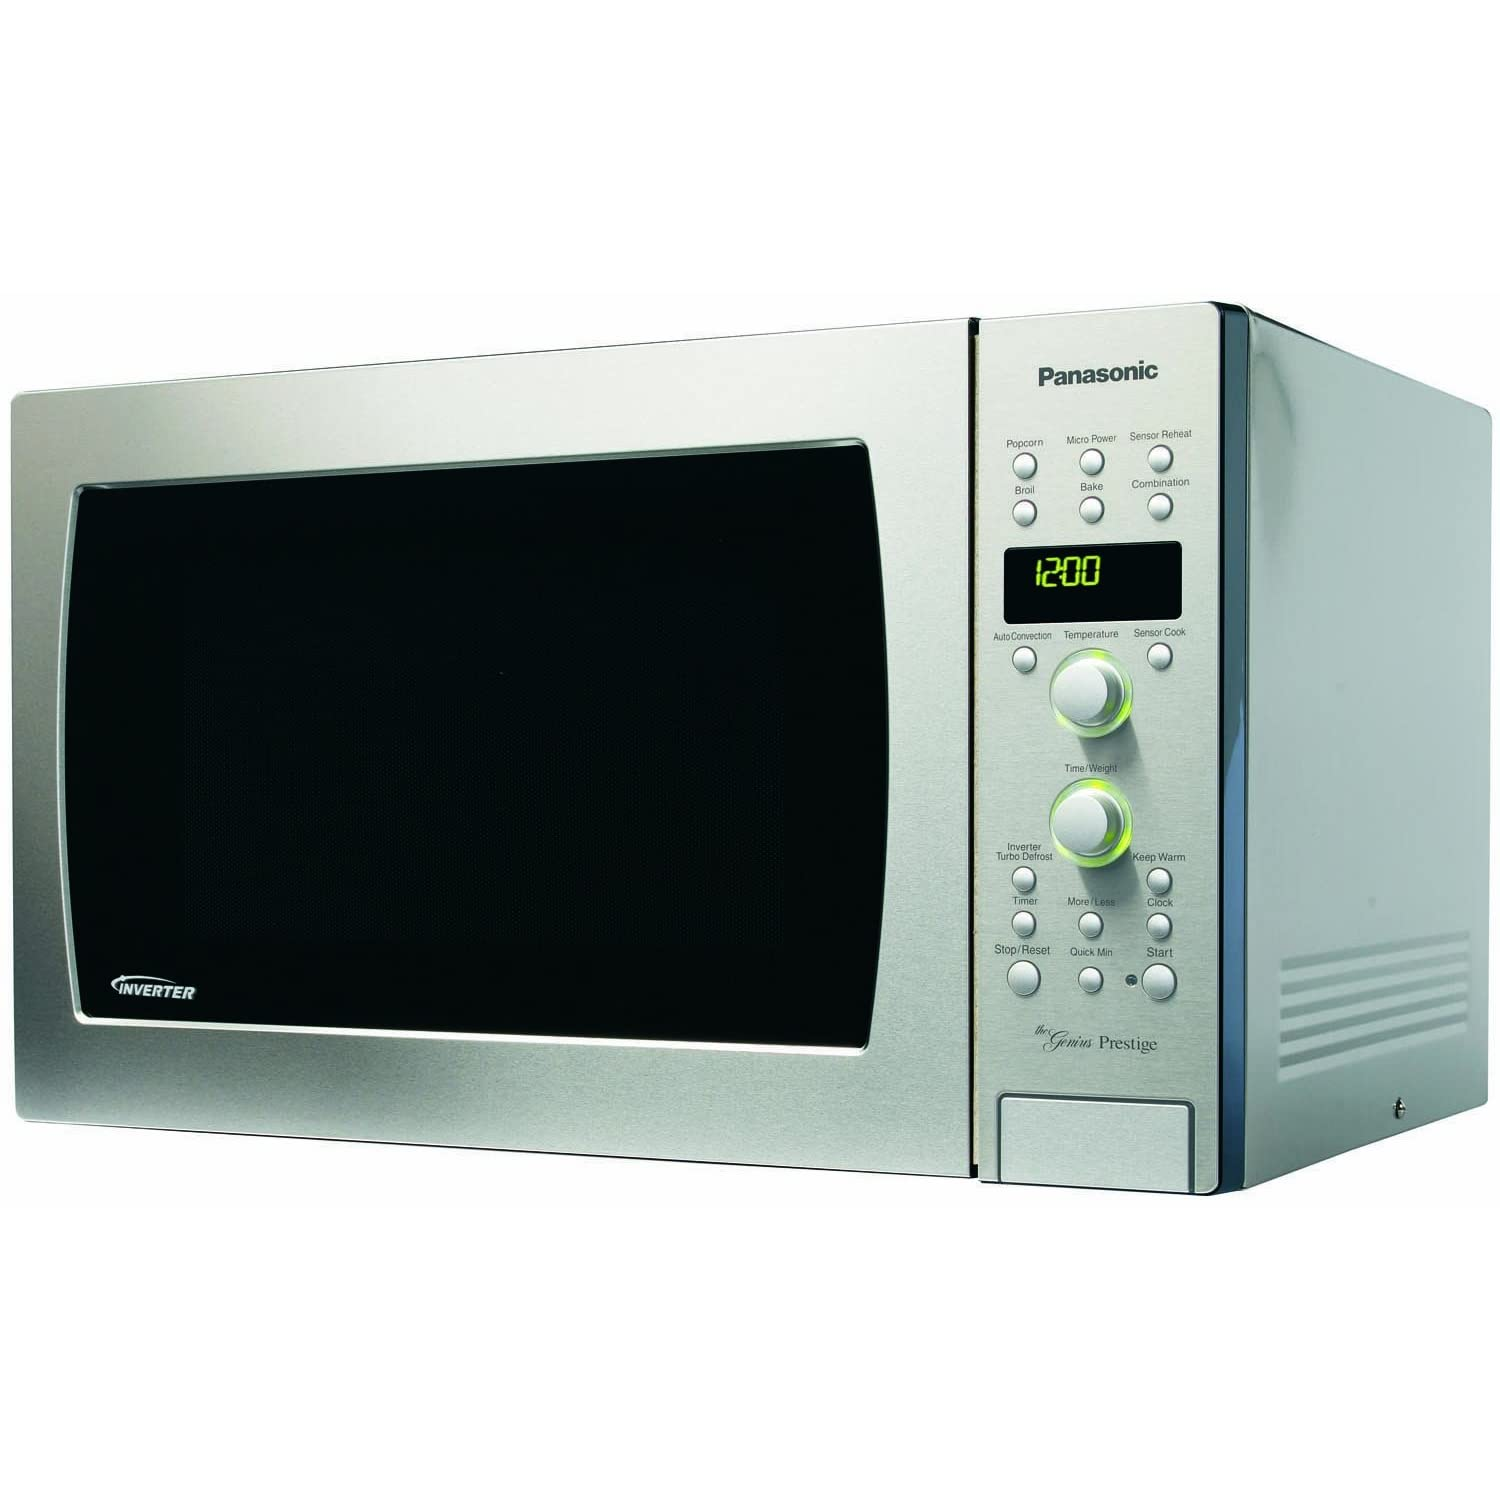 Panasonic Convection Microwave Microwave Ovens Vs Microwave Convection Ovens Vs